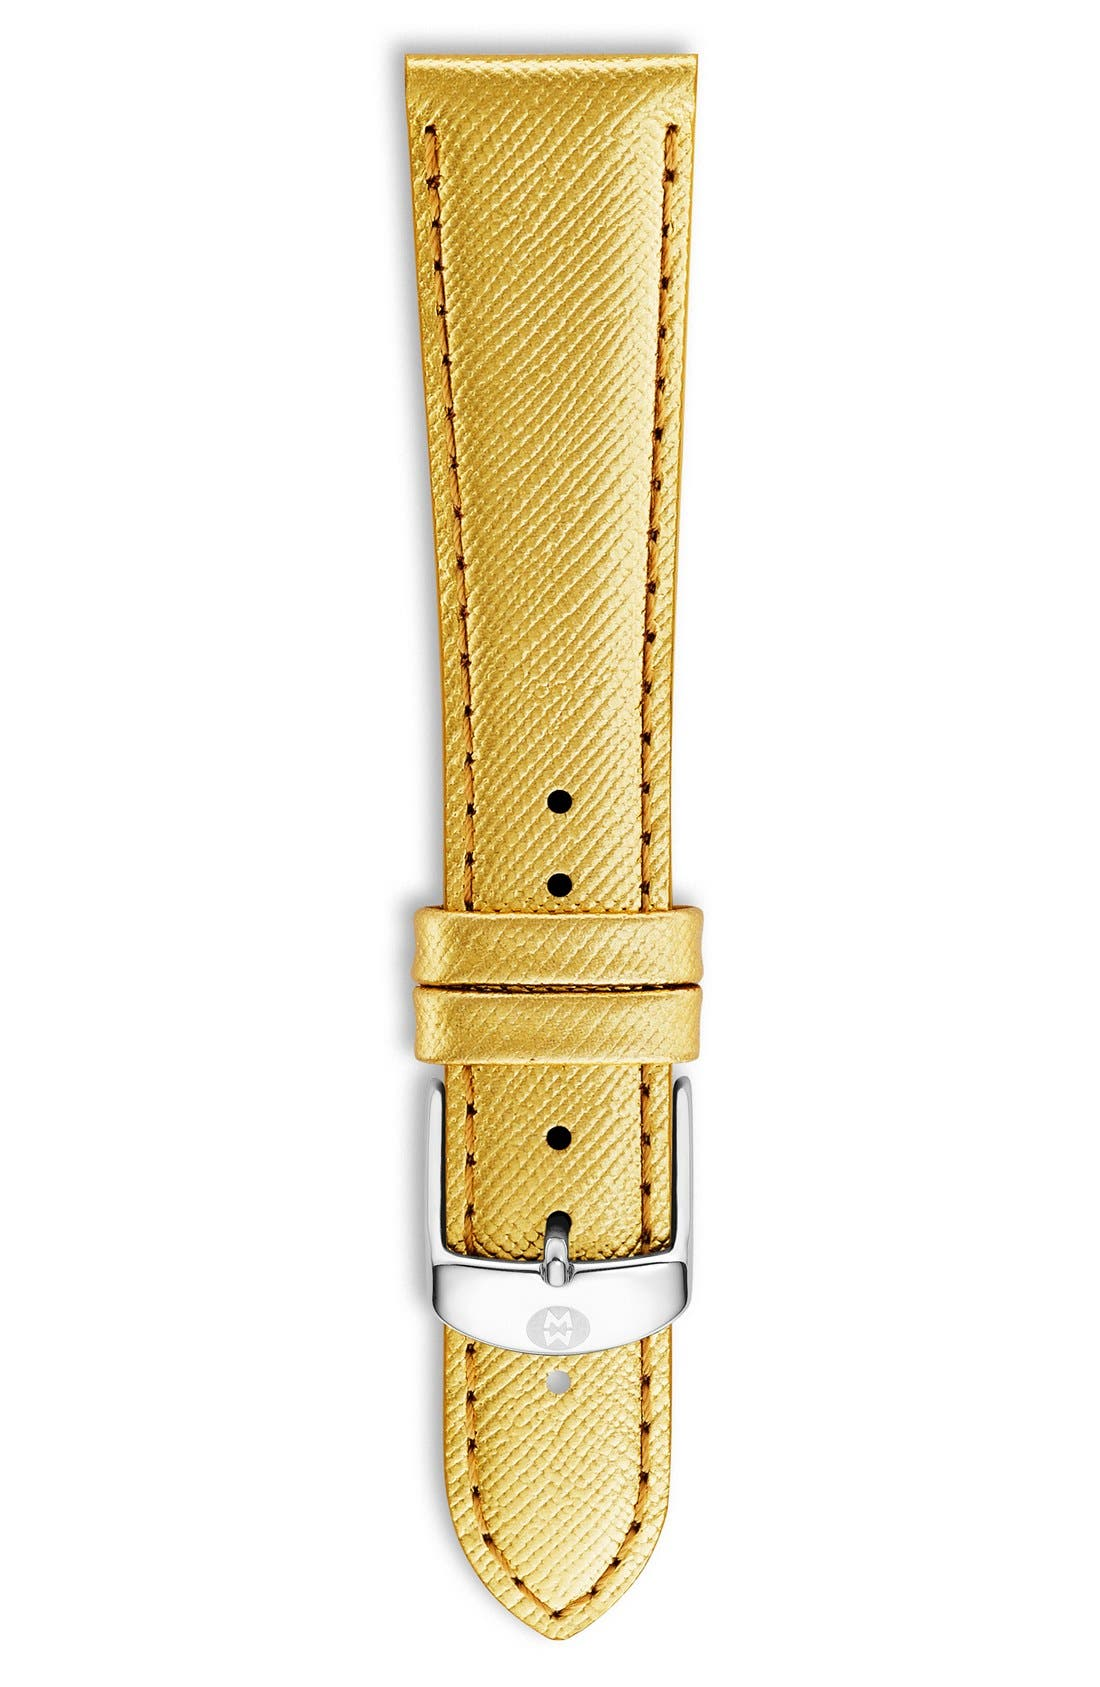 20mm Metallic Leather Watch Strap,                             Main thumbnail 1, color,                             710